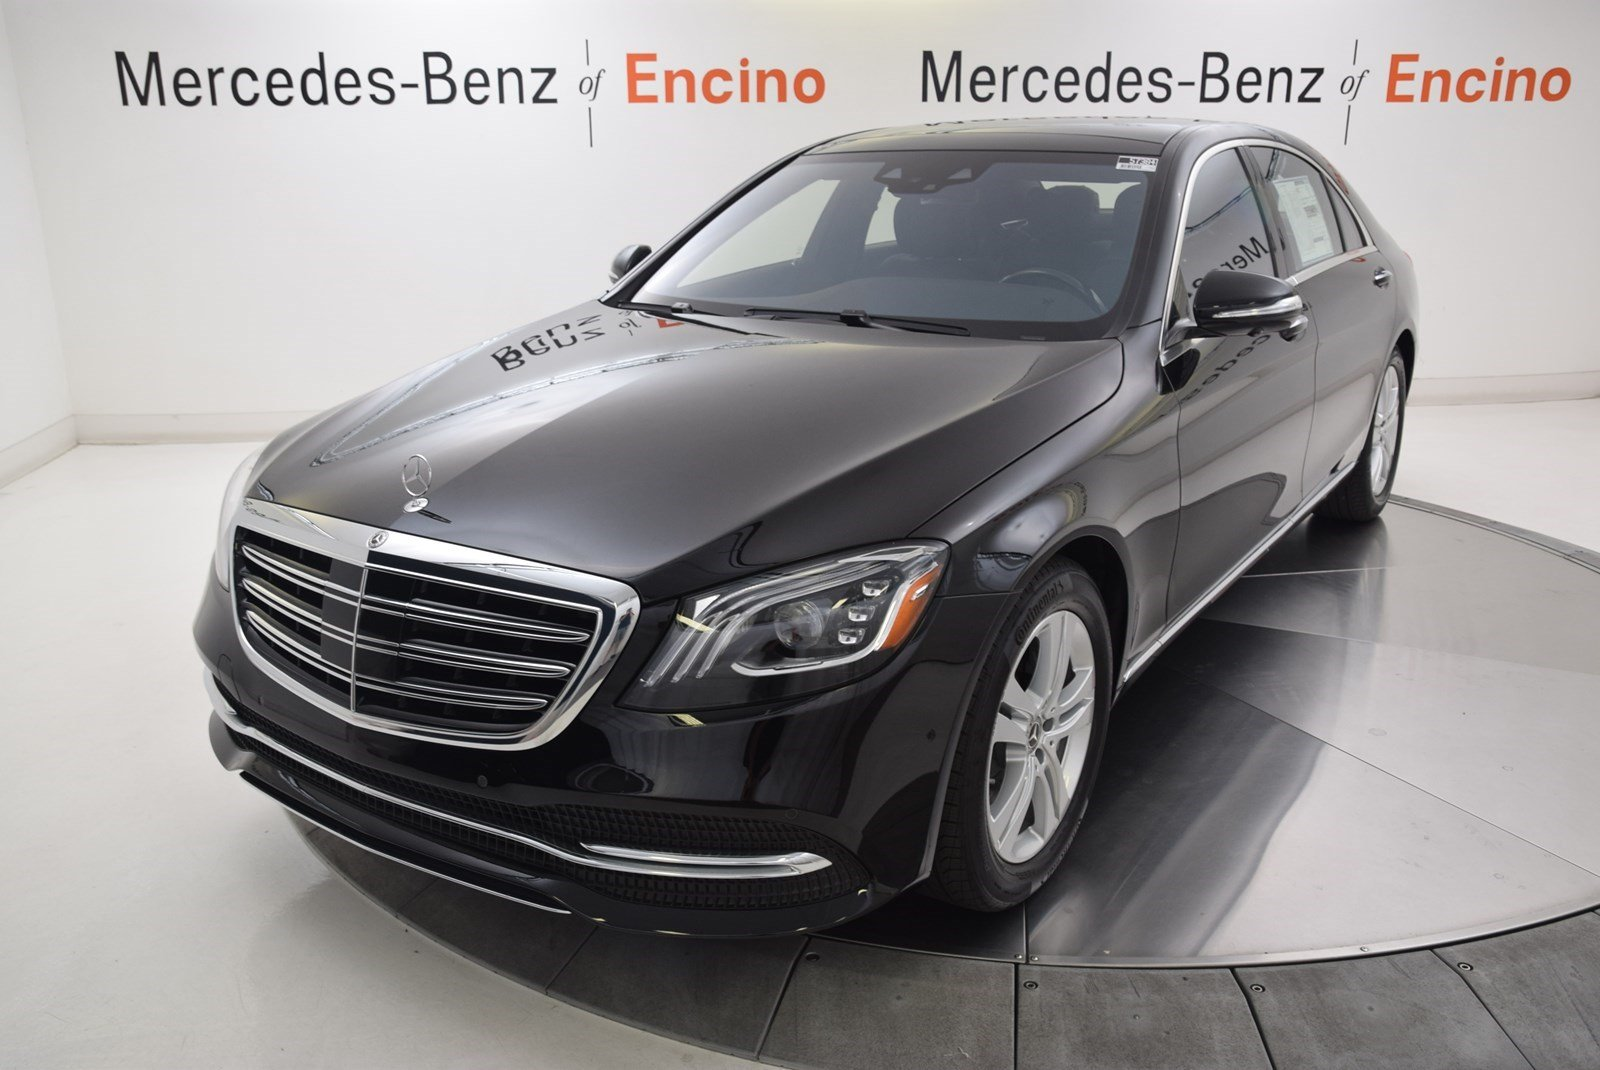 new 2018 mercedes benz s class s 450 sedan in encino